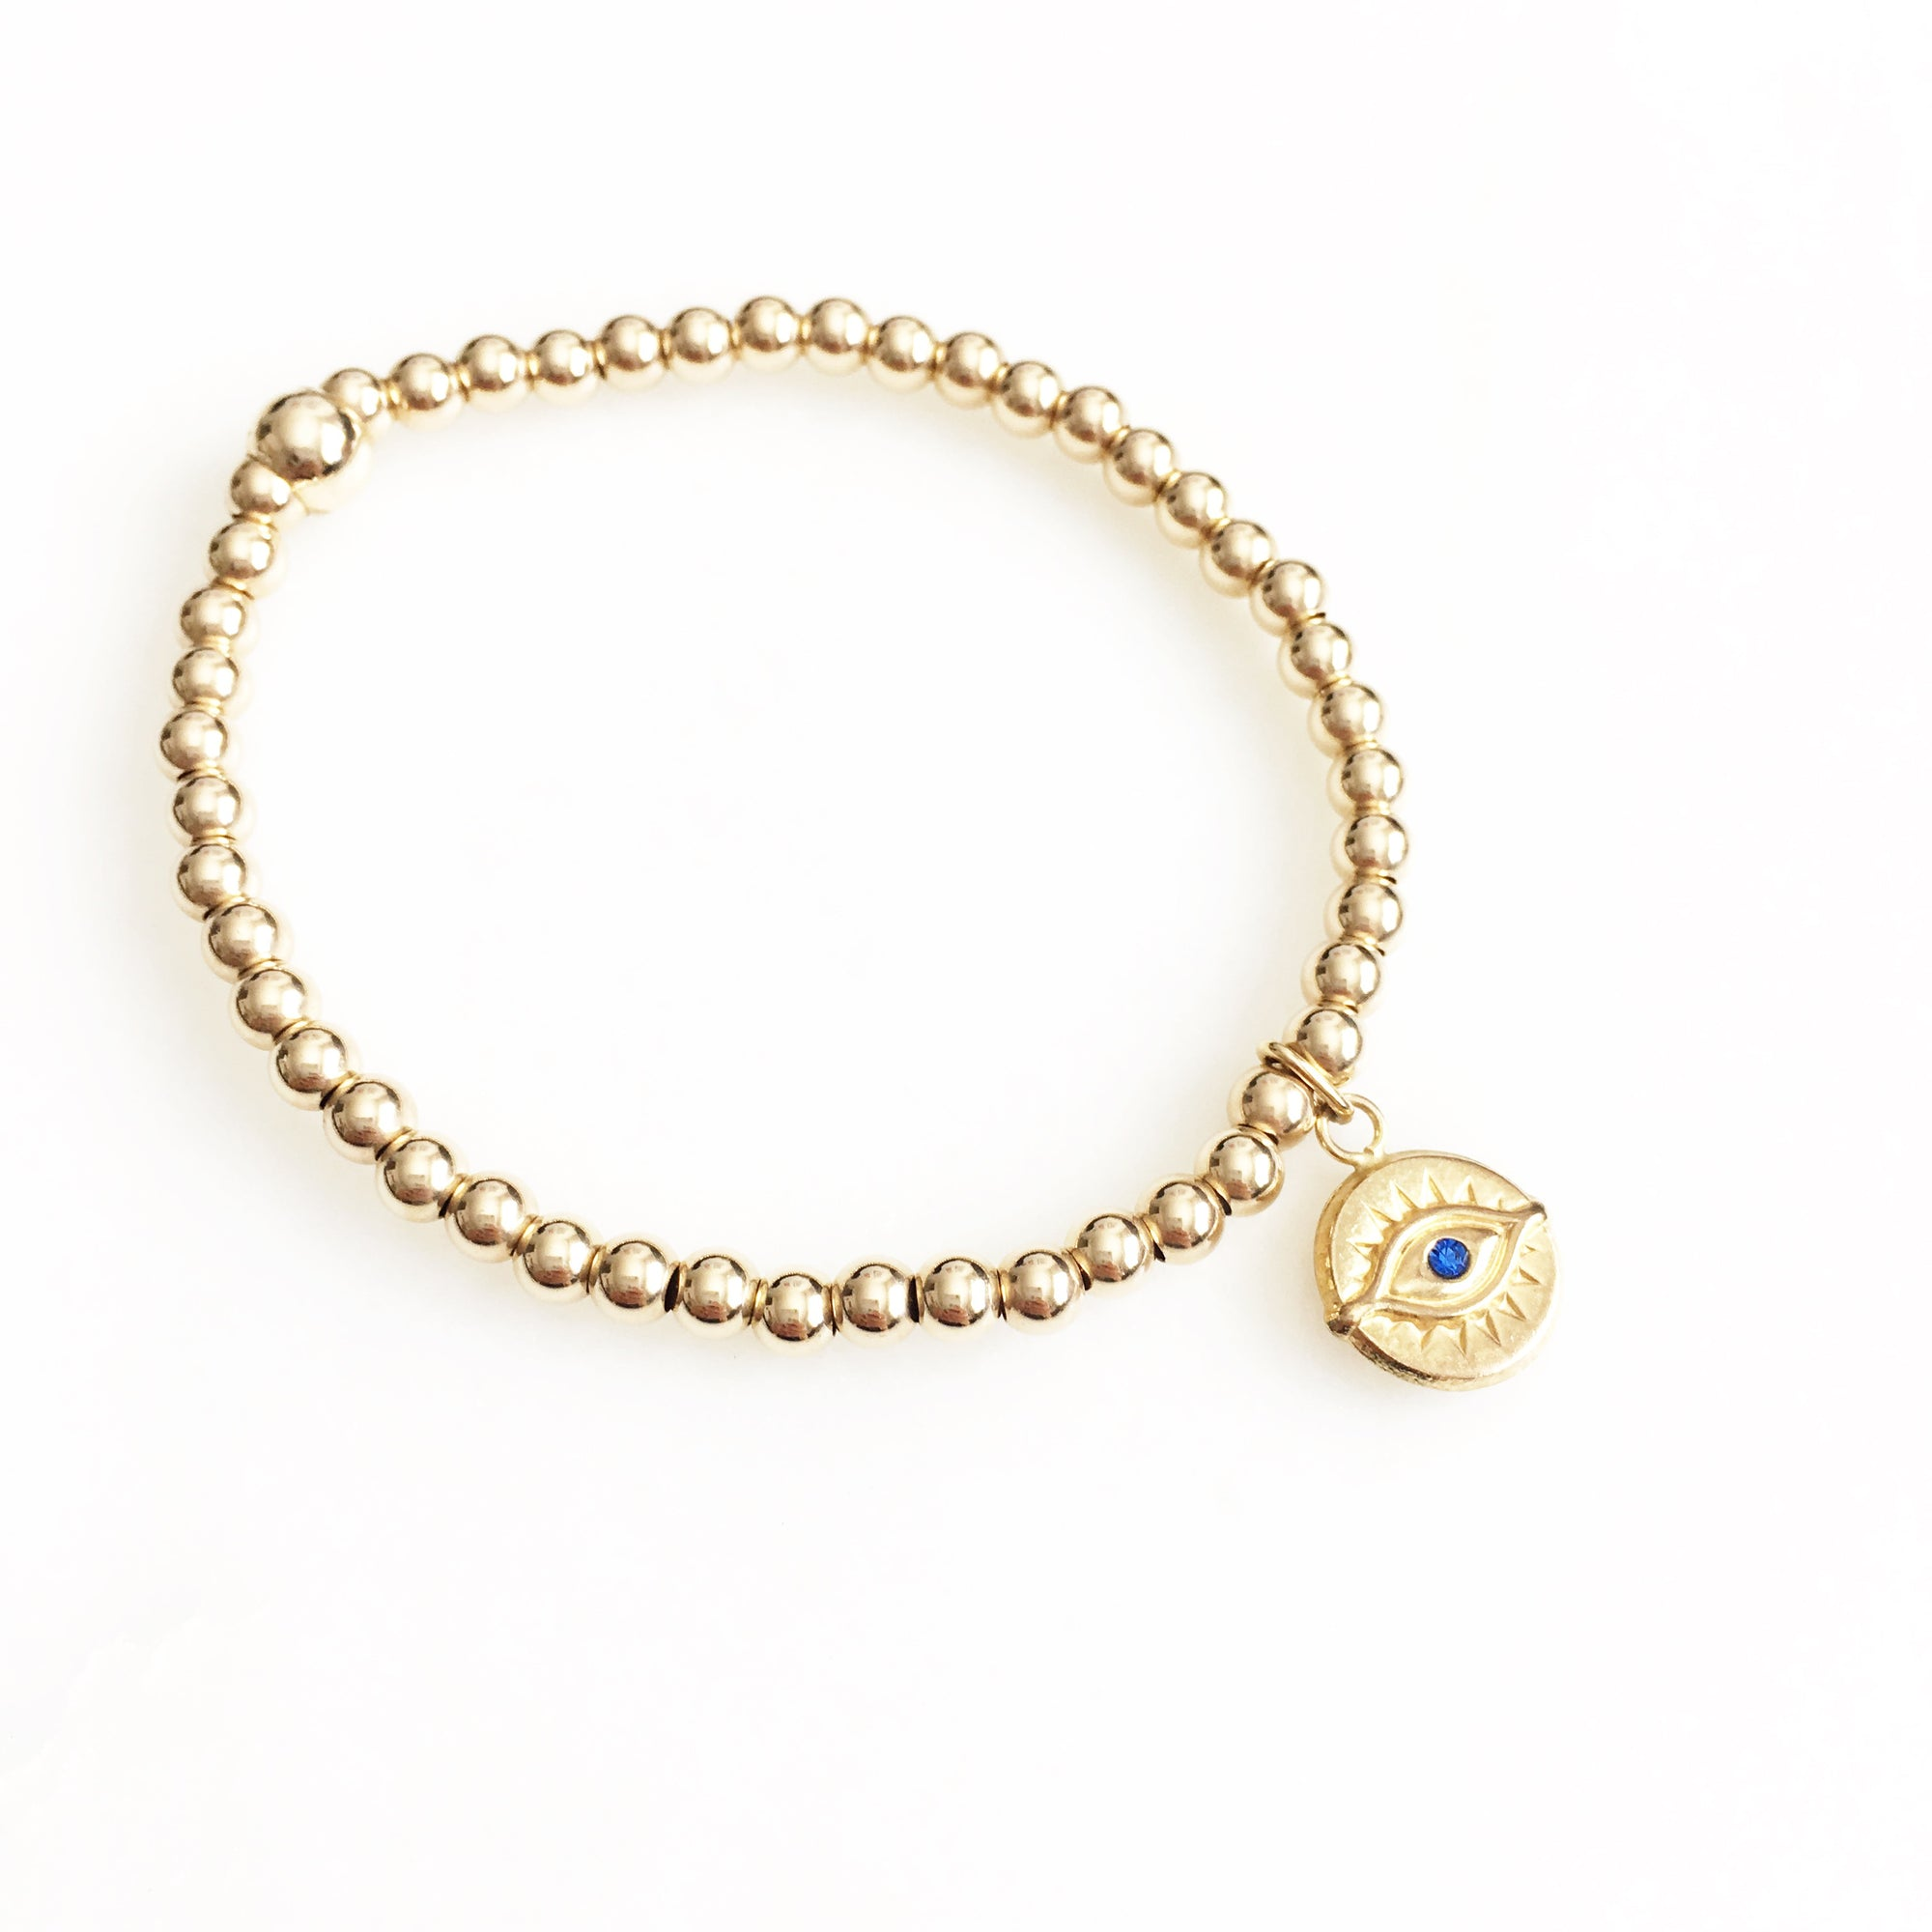 Gold Filled Beads Blue Eye Bracelet